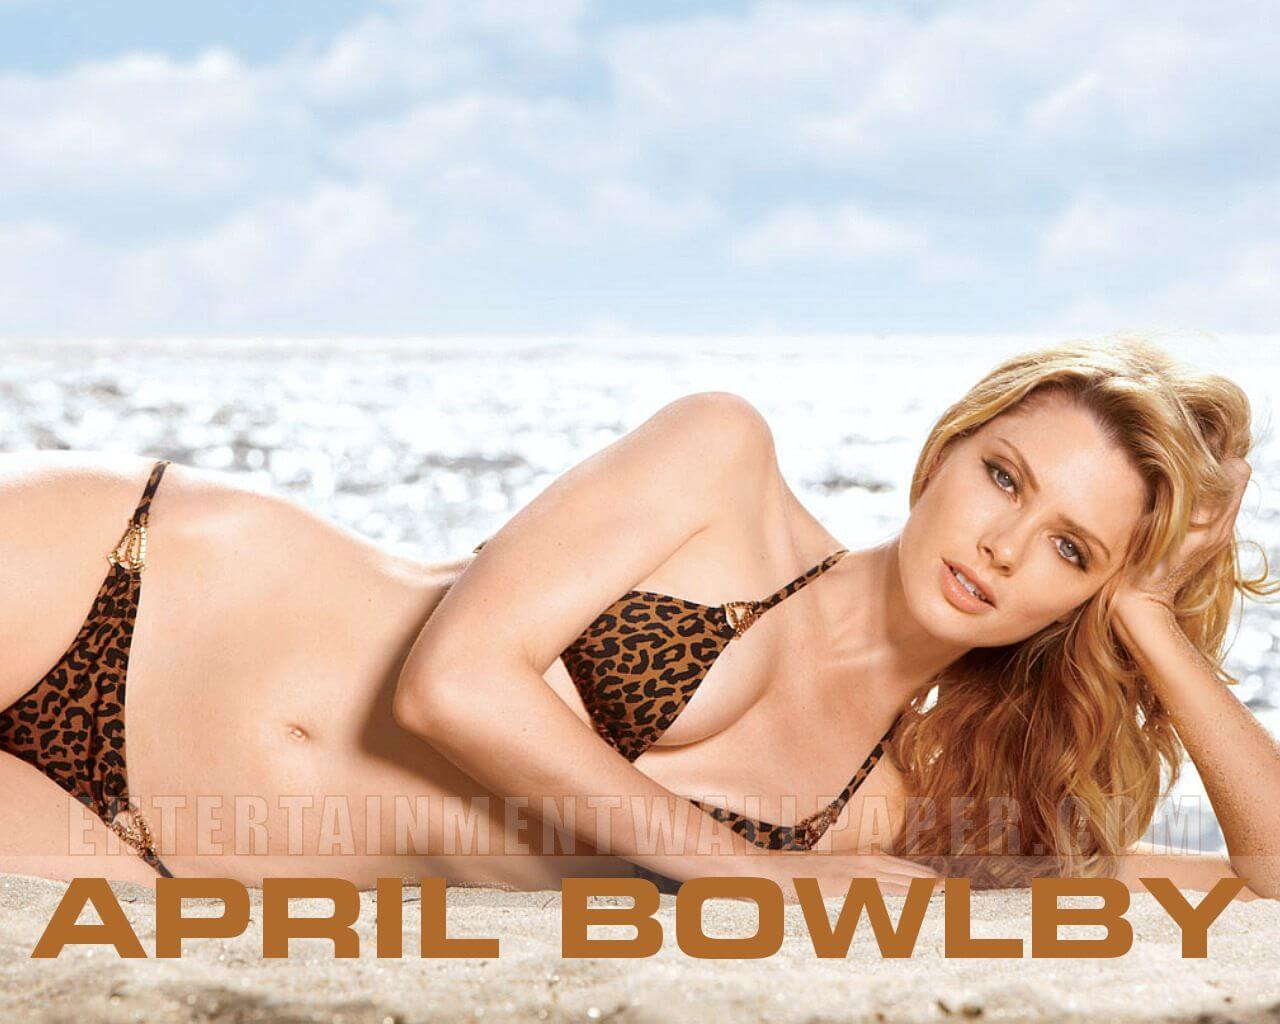 April Bowlby boo bs cleavage